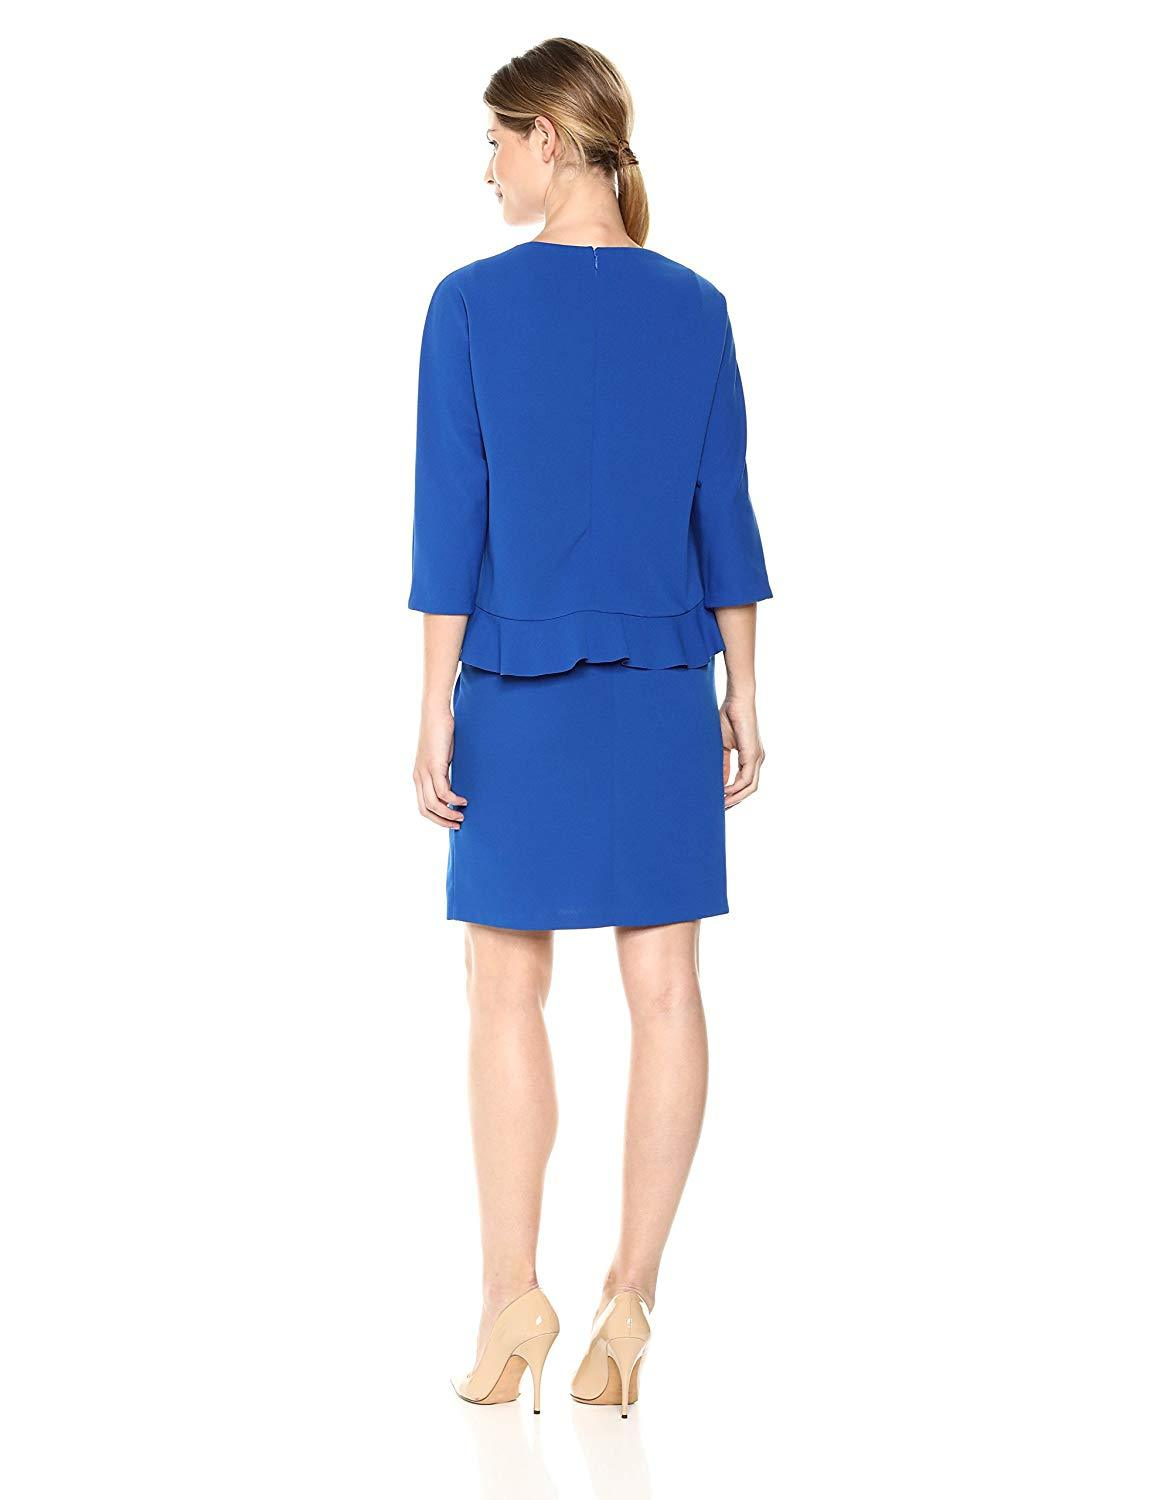 Taylor - 9859M Quarter Sleeve Ruffle-Trimmed Popover Dress In Blue